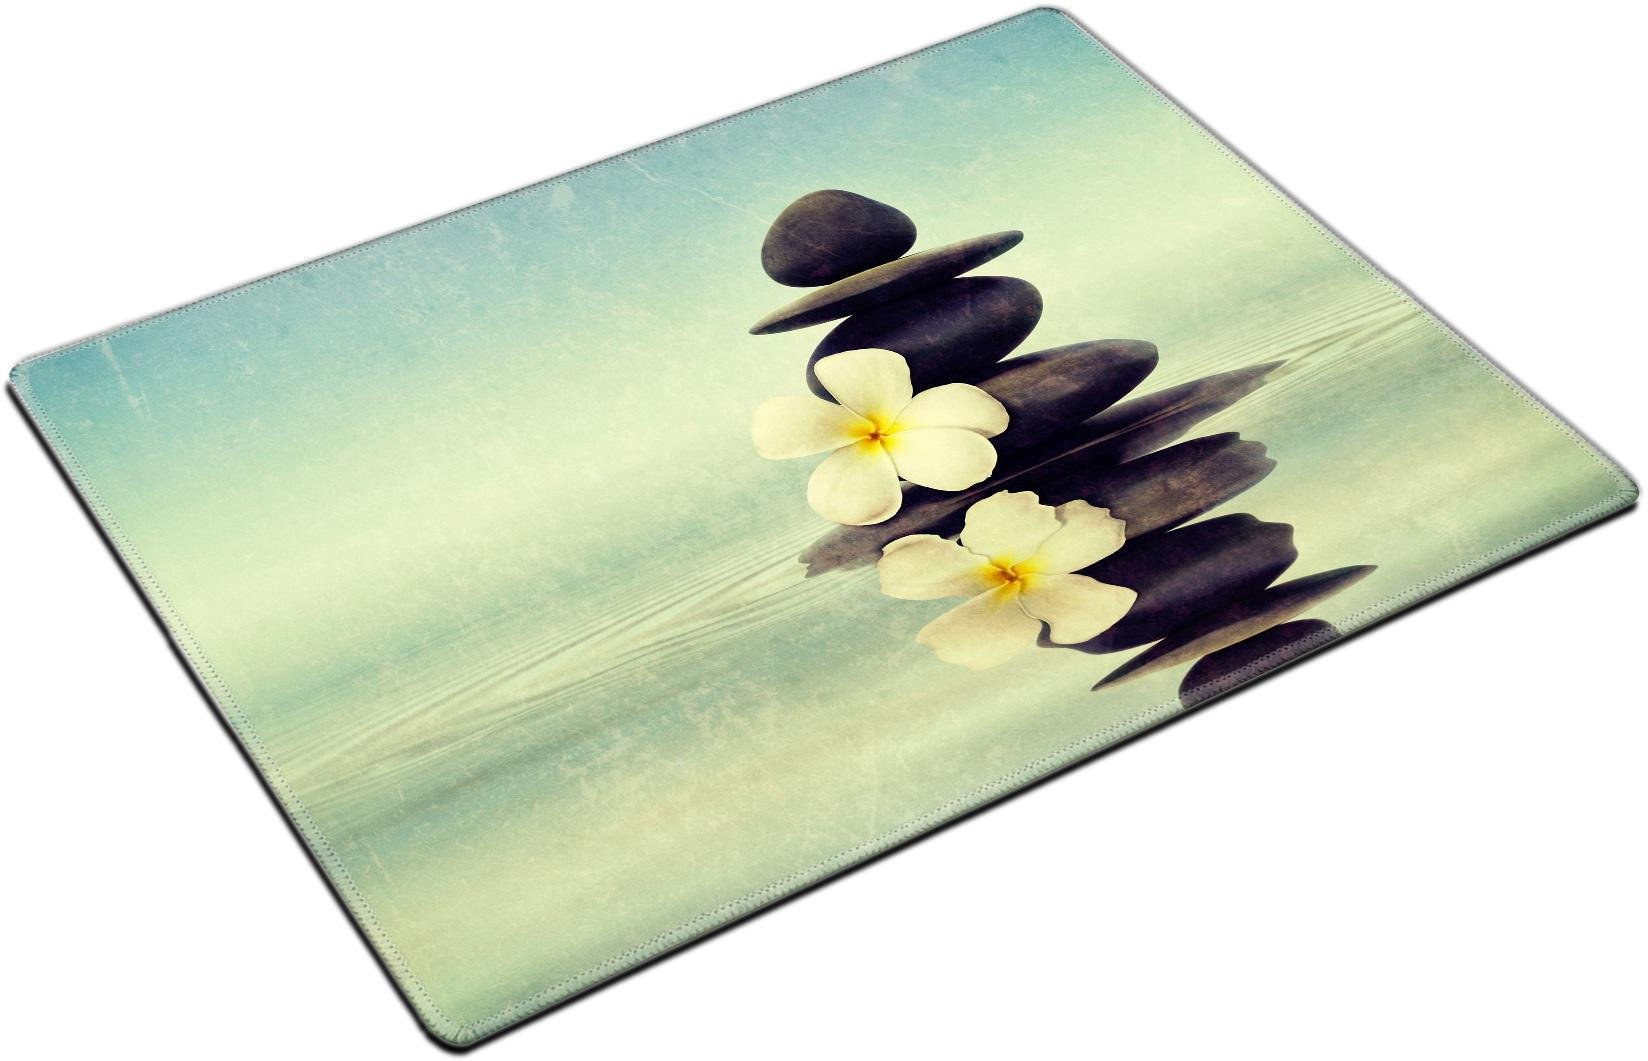 MSD Place Mat Non-Slip Natural Rubber Desk Pads Design: 27847859 Vintage Retro Hipster Style Travel Image of Zen Spa Concept Background Zen Massage Stones with Frangipani